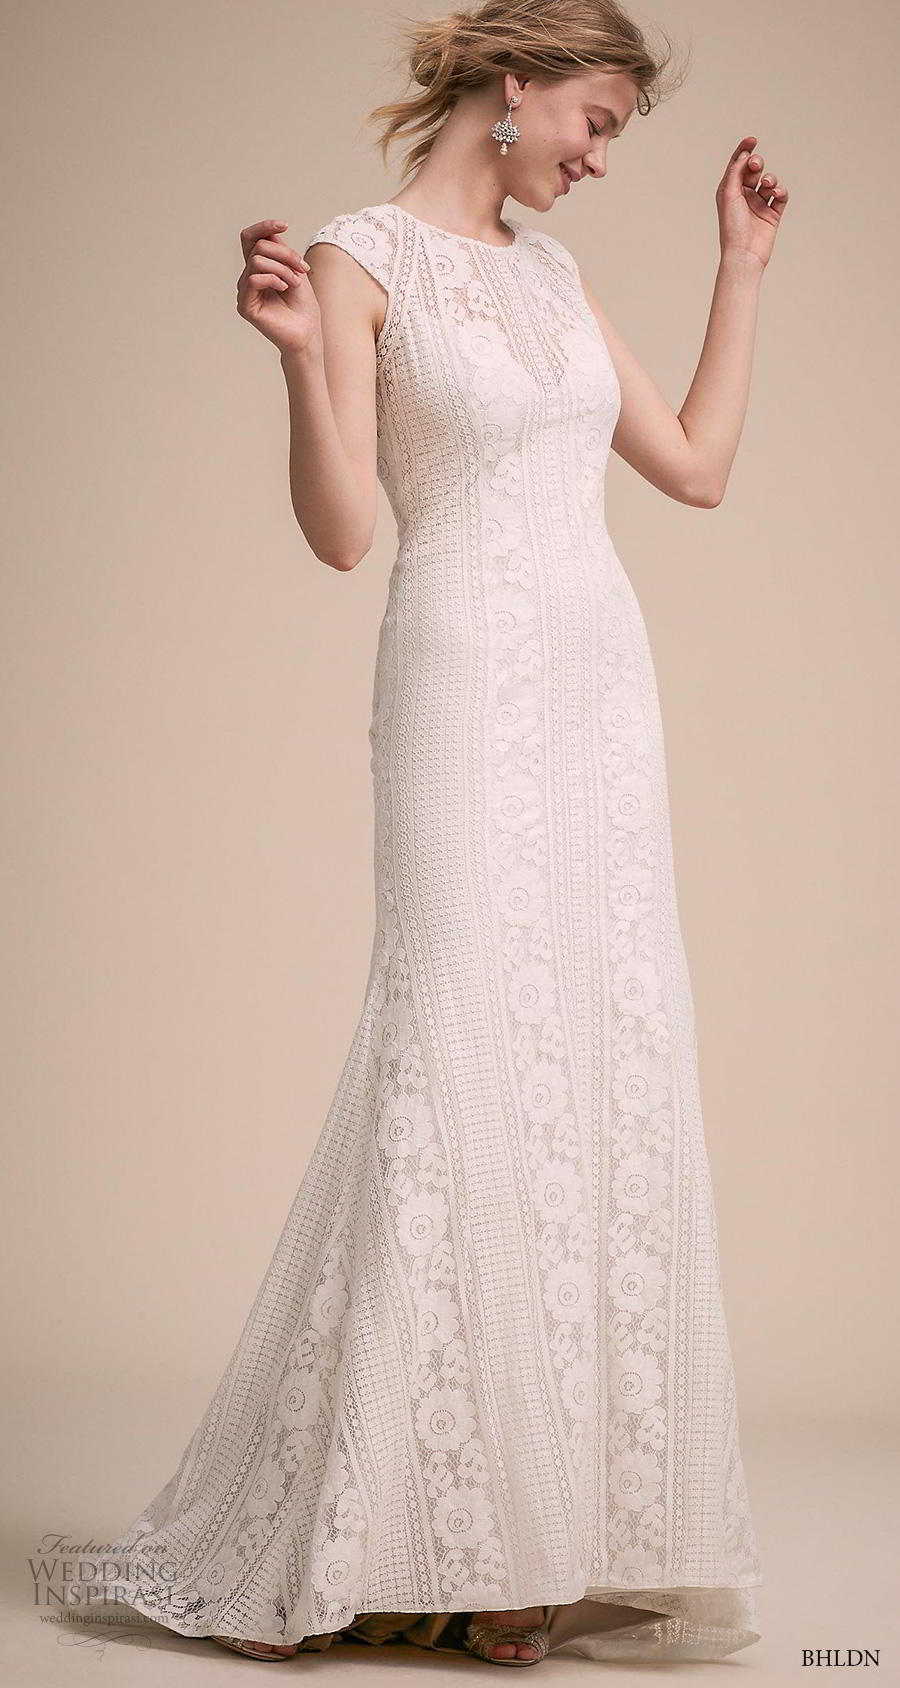 bhldn 2018 own bridal cap sleeves jewel neck full embellishment elegant bohemian modified a  line wedding dress keyhole back sweep train (12) mv